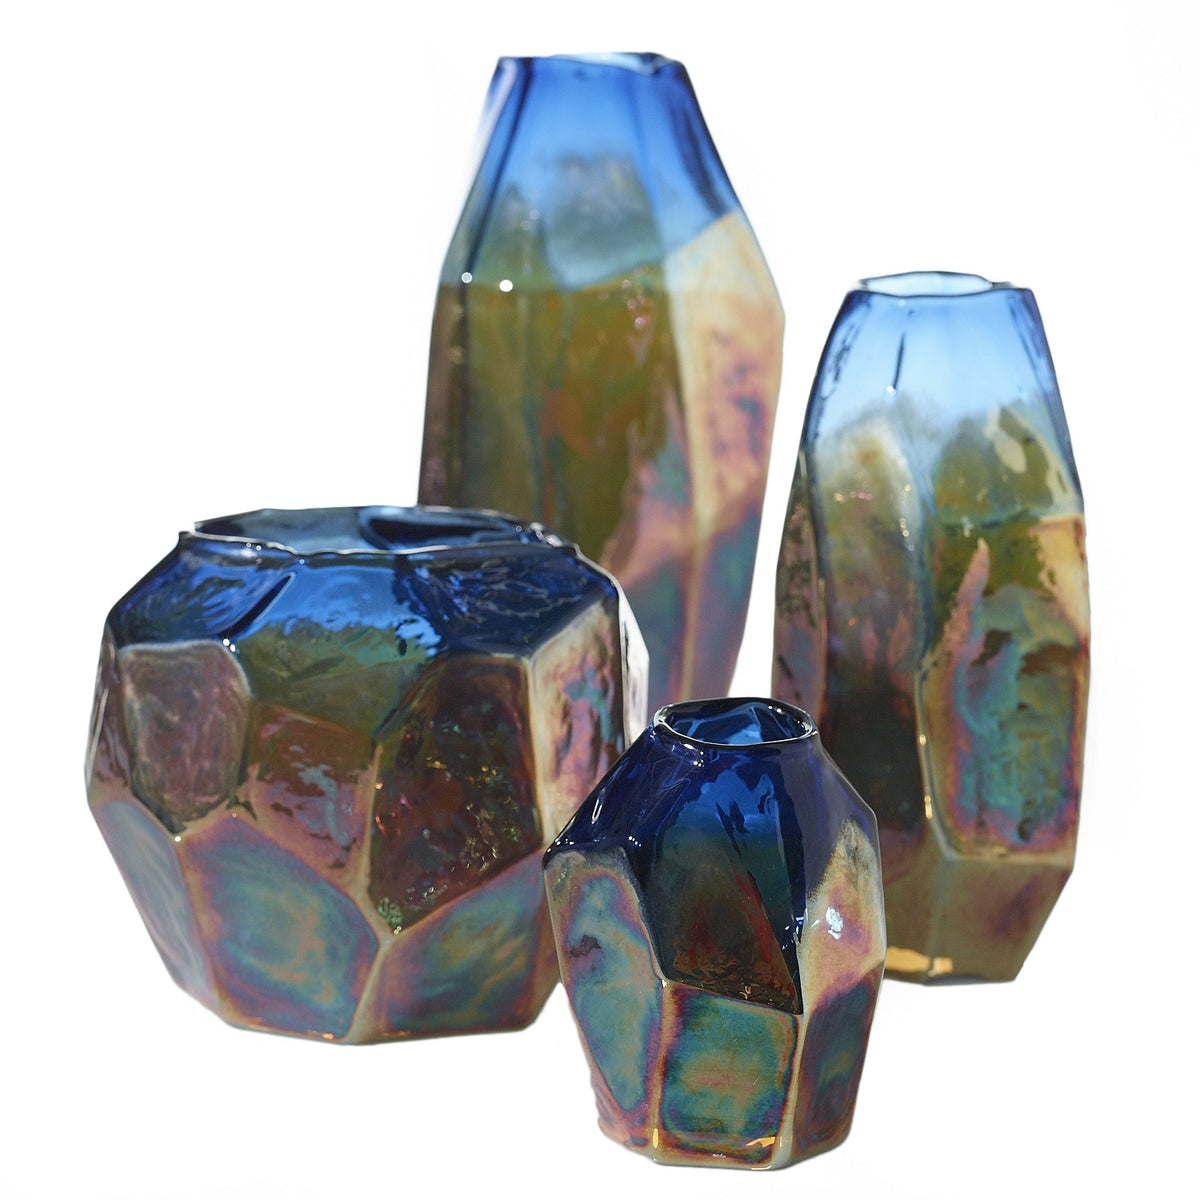 Studio Vase - Colored Glass